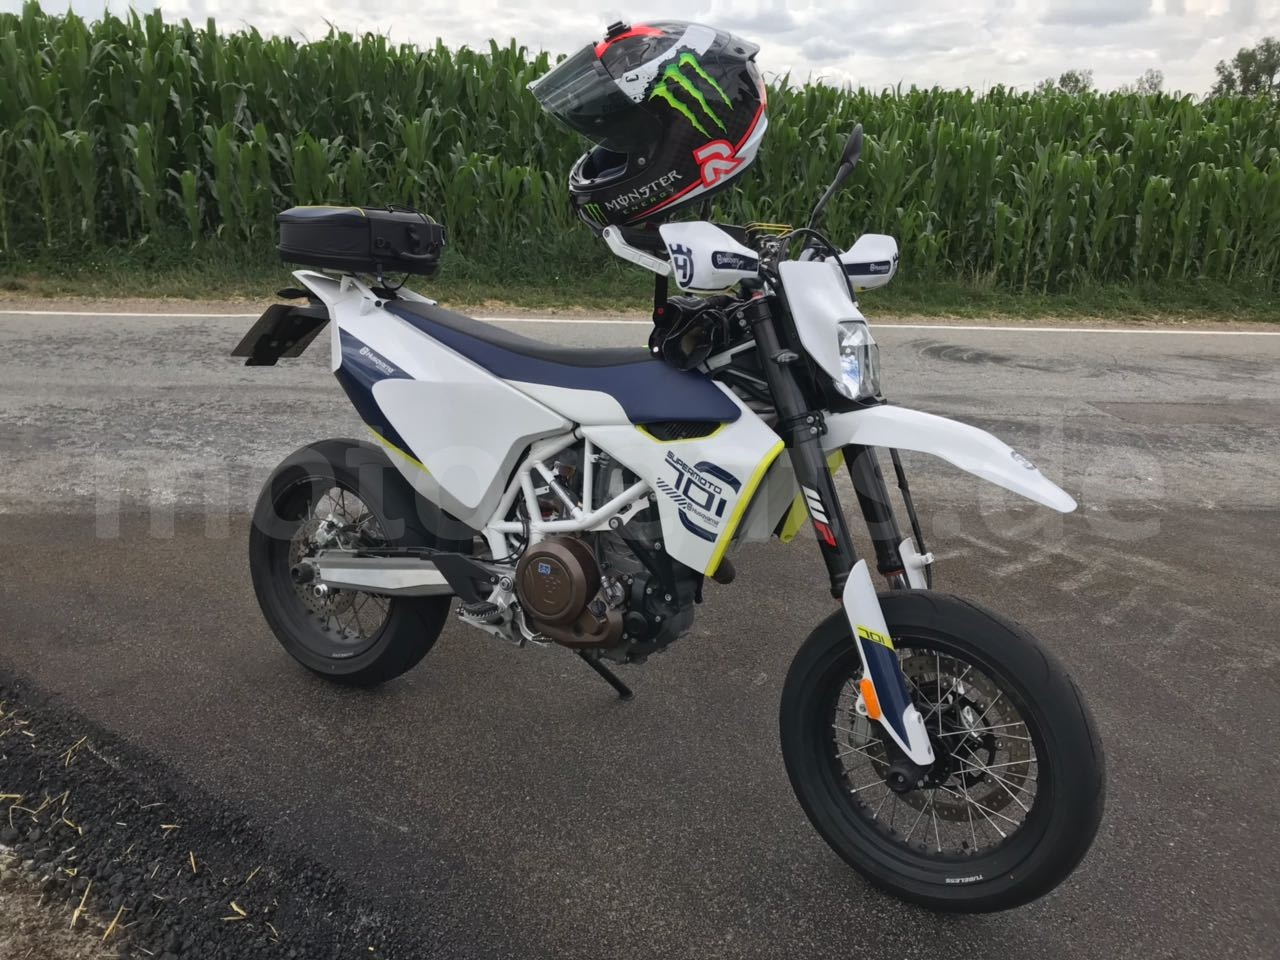 701Husqvarna SM by Bade (1)